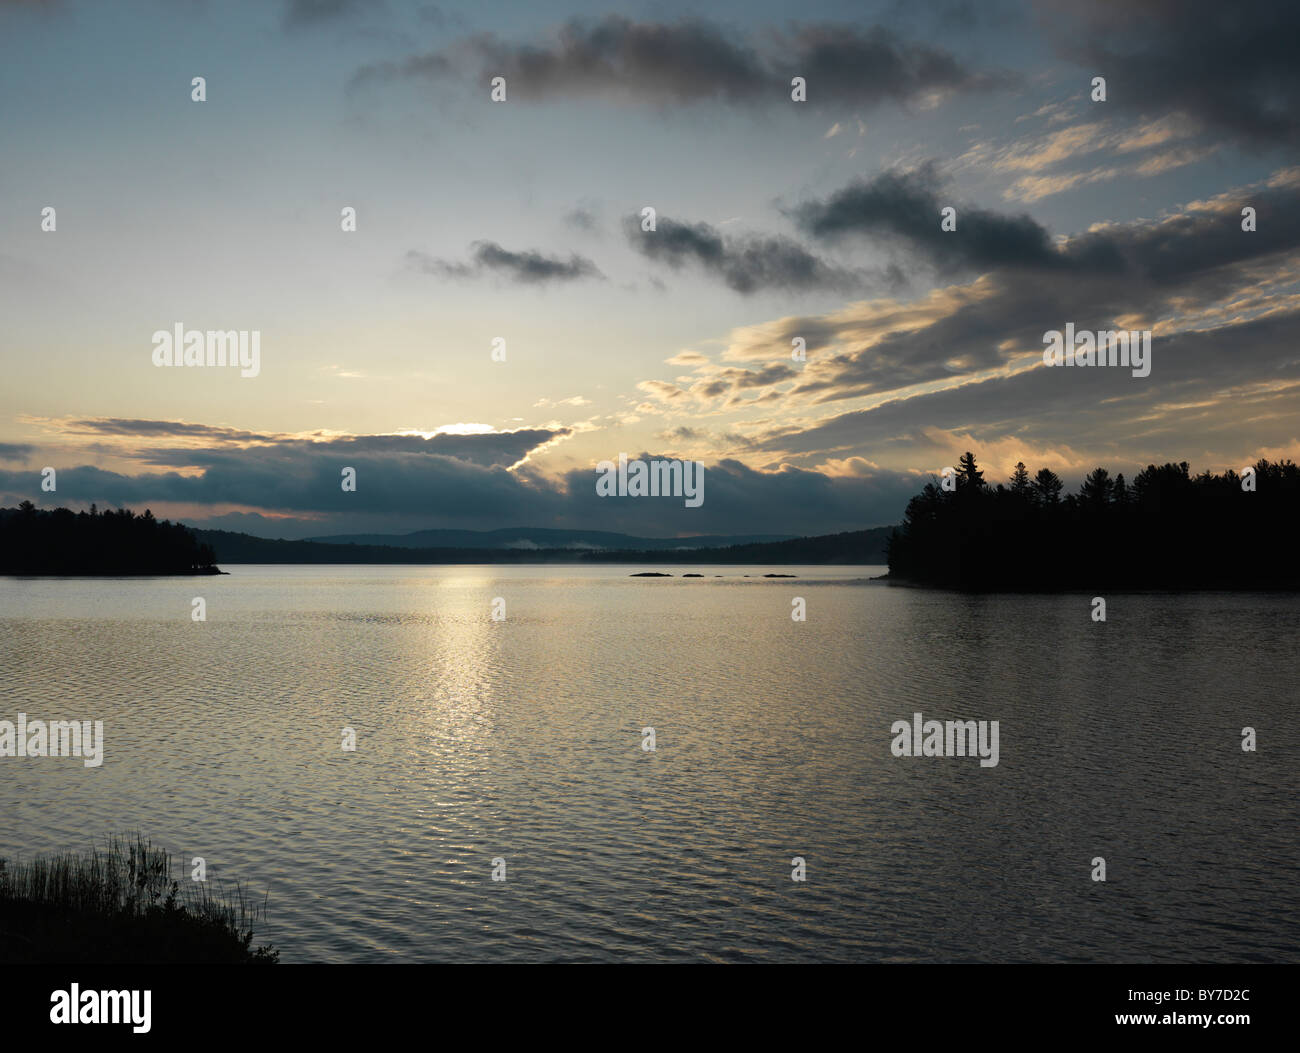 The Lake of Two Rivers at dawn fall nature scenery. Algonquin Provincial Park, Ontario, Canada. - Stock Image